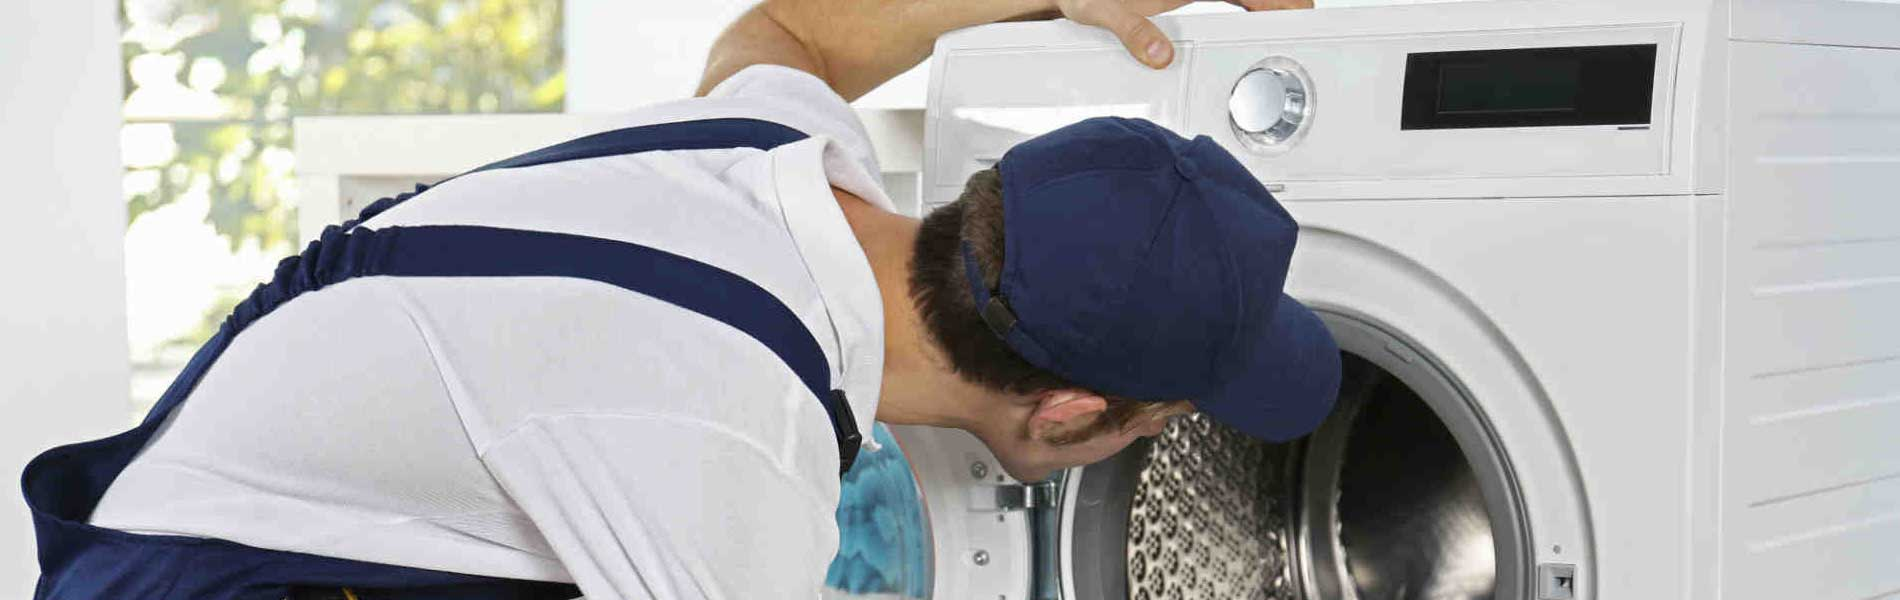 Siemens Washing Machine Service in MKB Nagar